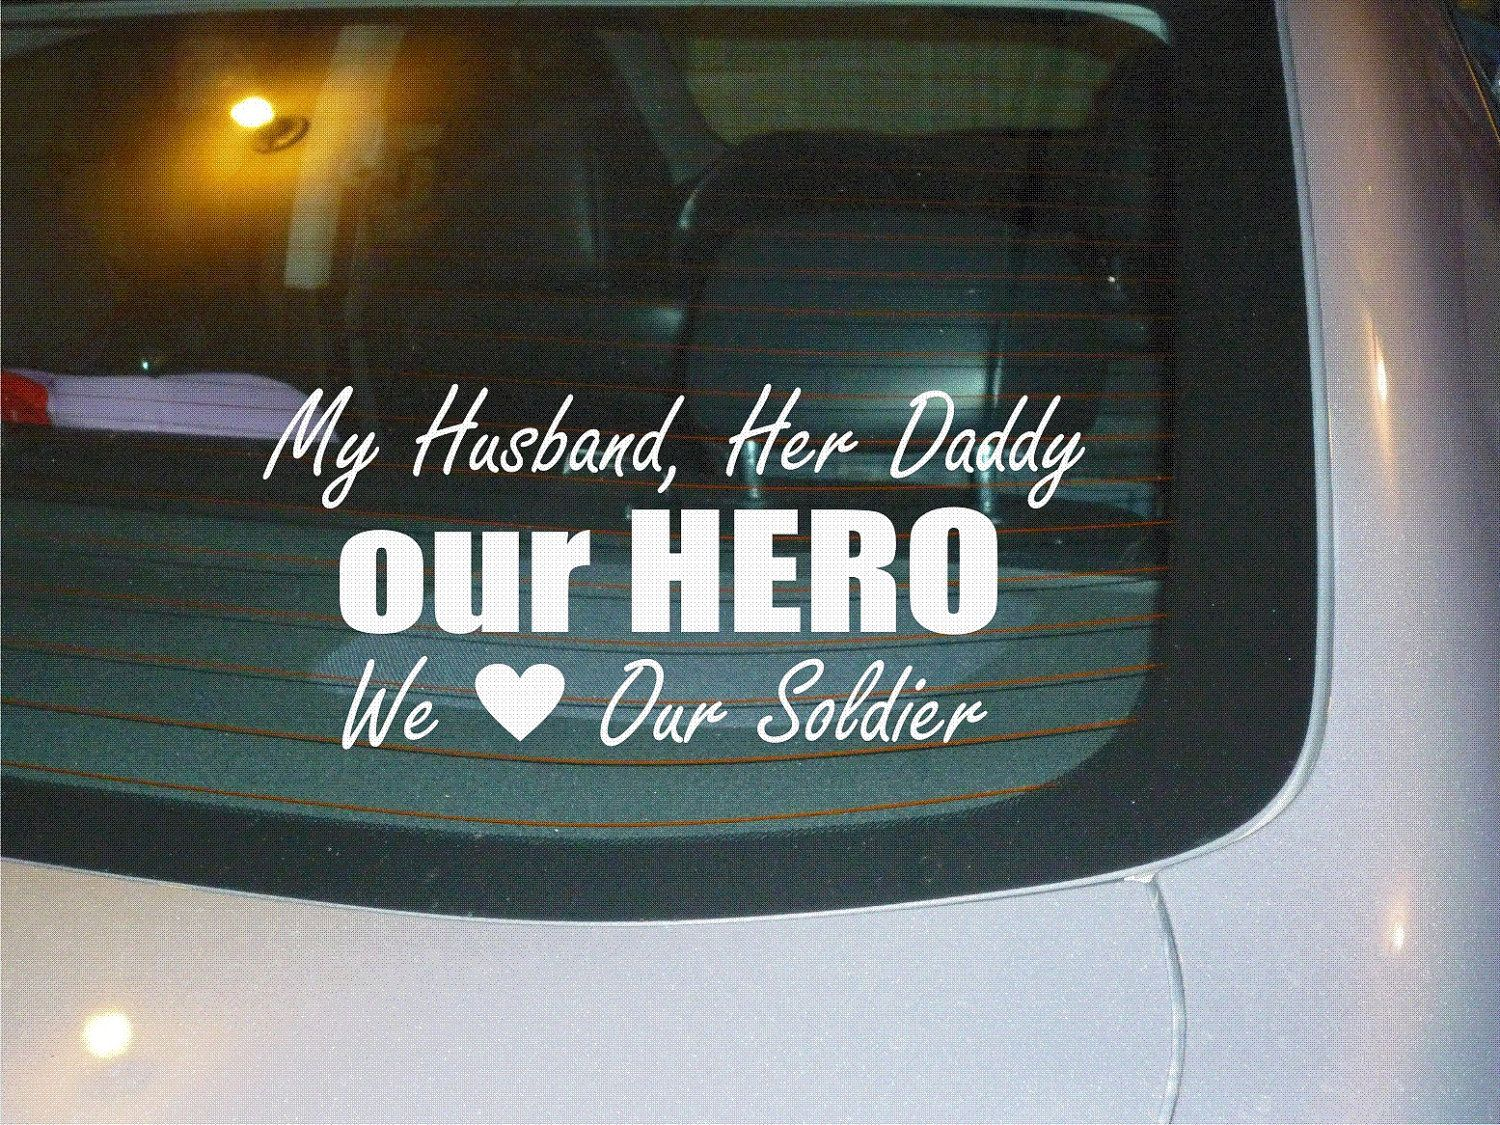 Our Hero Soldier Army Wife Child Car Decal Sticker New Car Decals Vinyl Car Decals Car Decals Stickers [ 1125 x 1500 Pixel ]